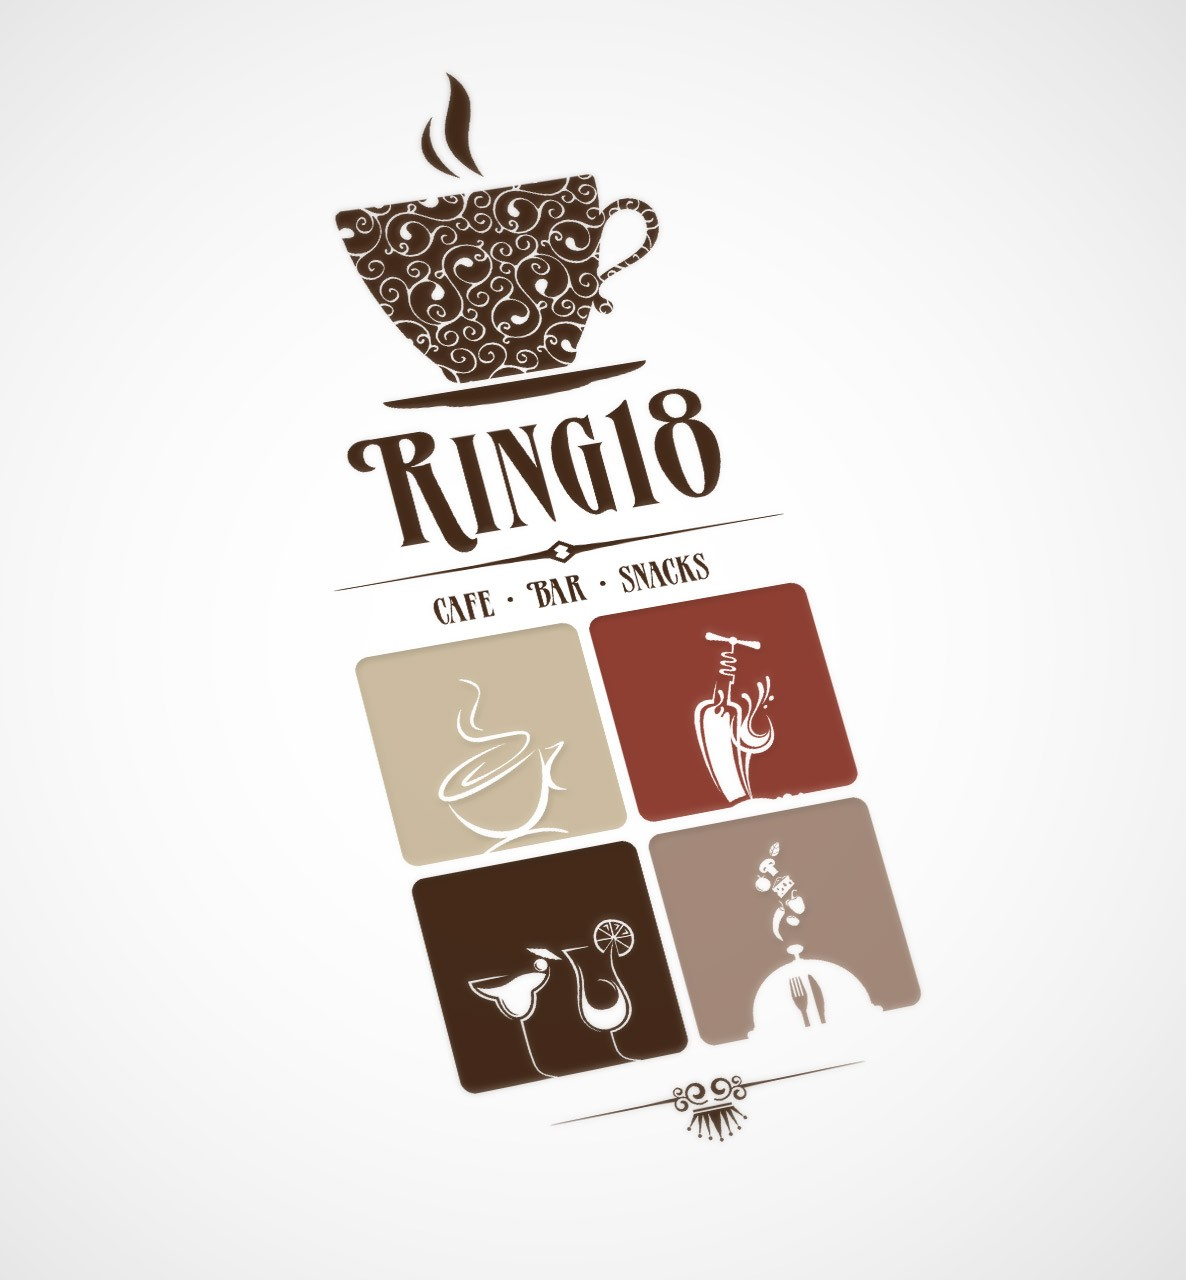 Kunde Cafe Ring18 Wels Logo